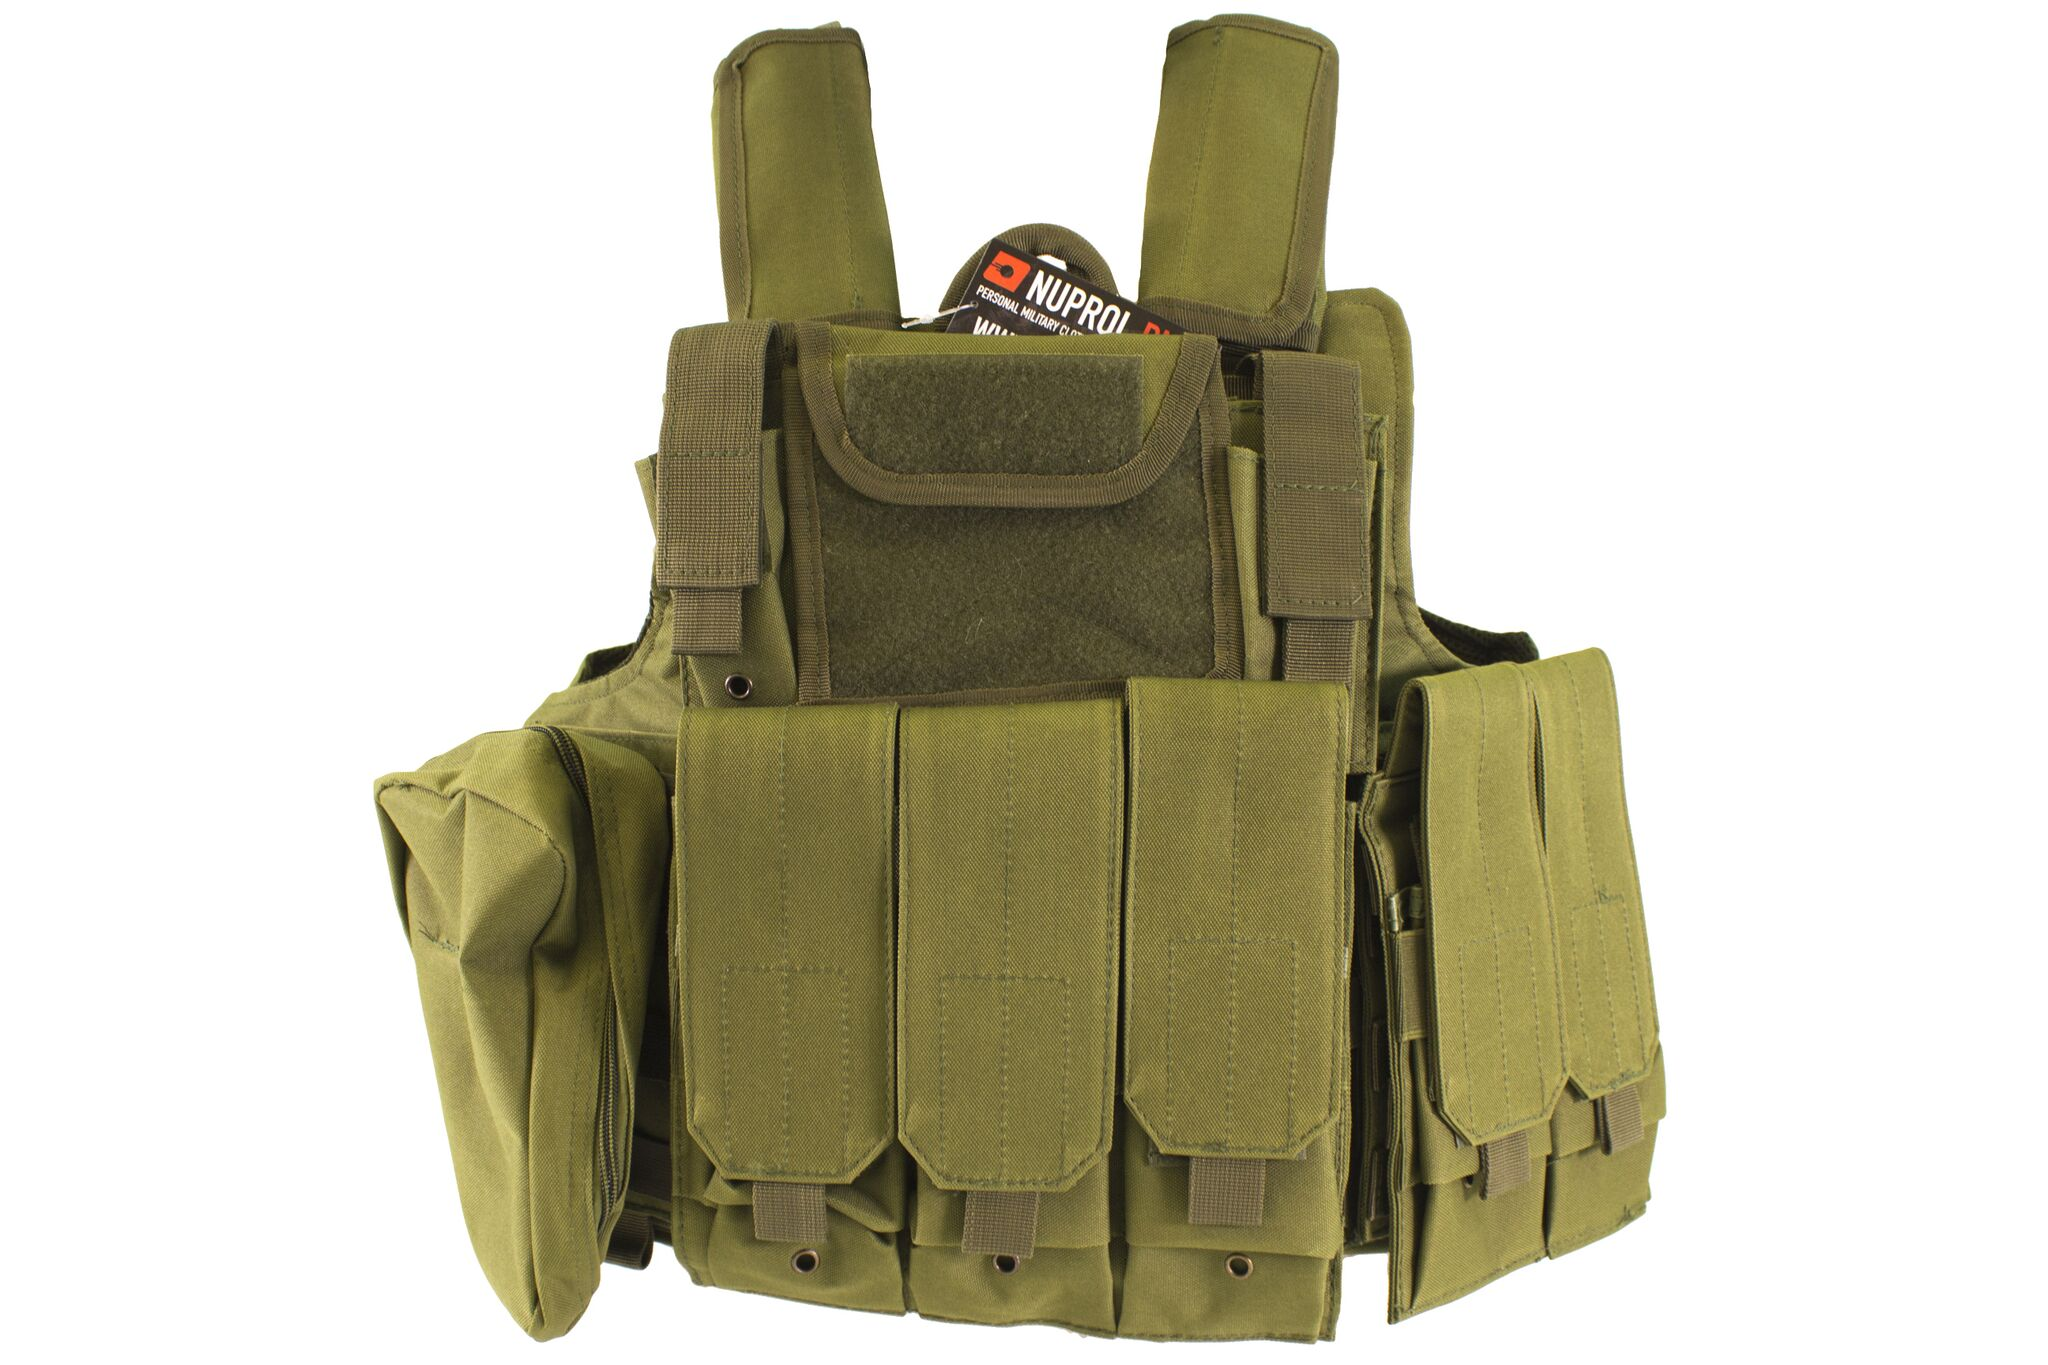 http://www.softair.ch/shop/bilder/COMBATGEAR/VESTS/NUP-6493-GN_01.jpeg